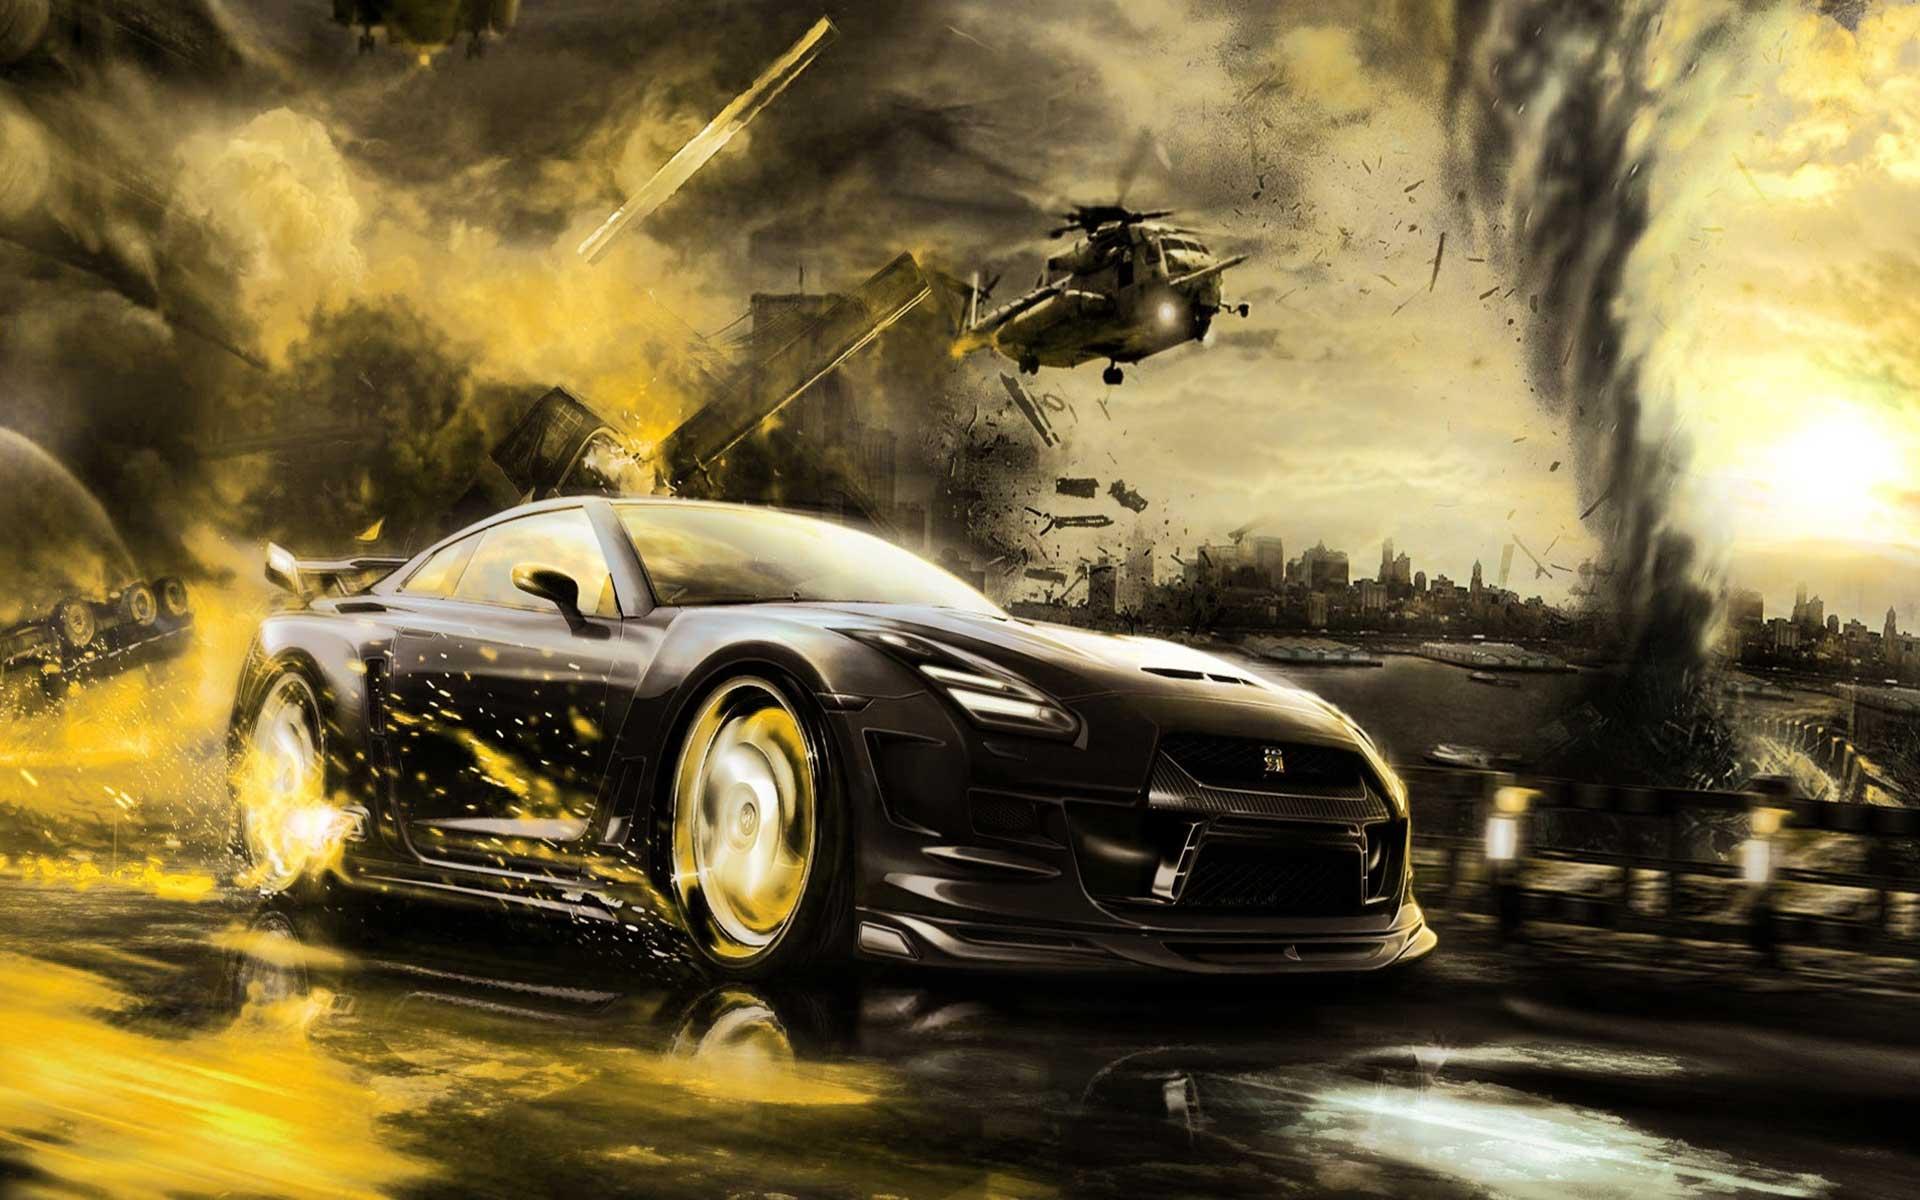 Cool Car Wallpapers HD  PixelsTalk  images about Cool Car on Pinterest  Air car, Cars and 1920x1200